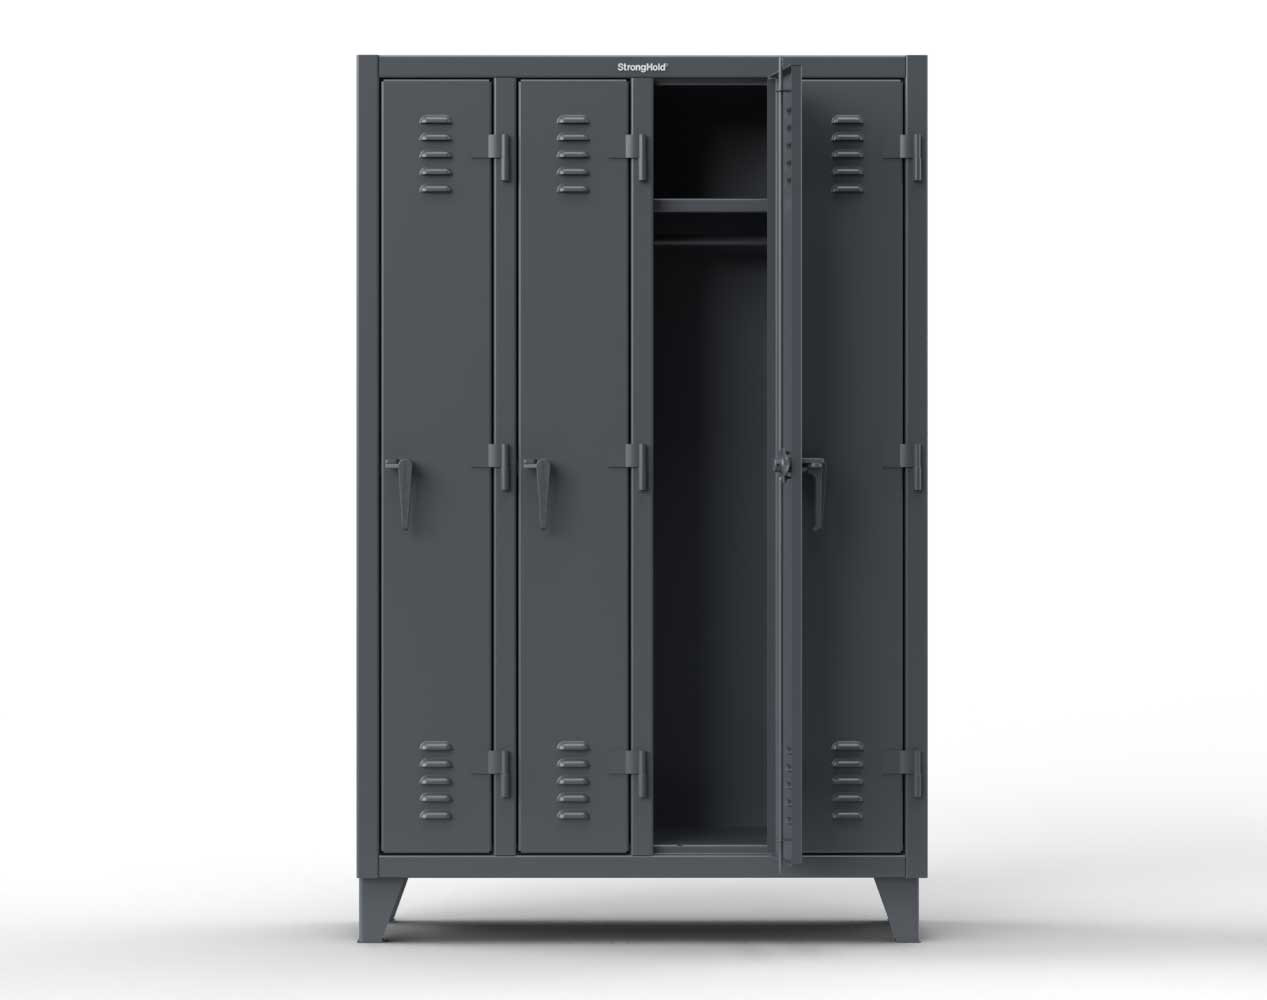 Extra Heavy Duty 12 GA Single-Tier Locker with 6 Compartment, Louvered Doors, Wardrobe Rod – 74 in. W x 18in. D x 78 in. H